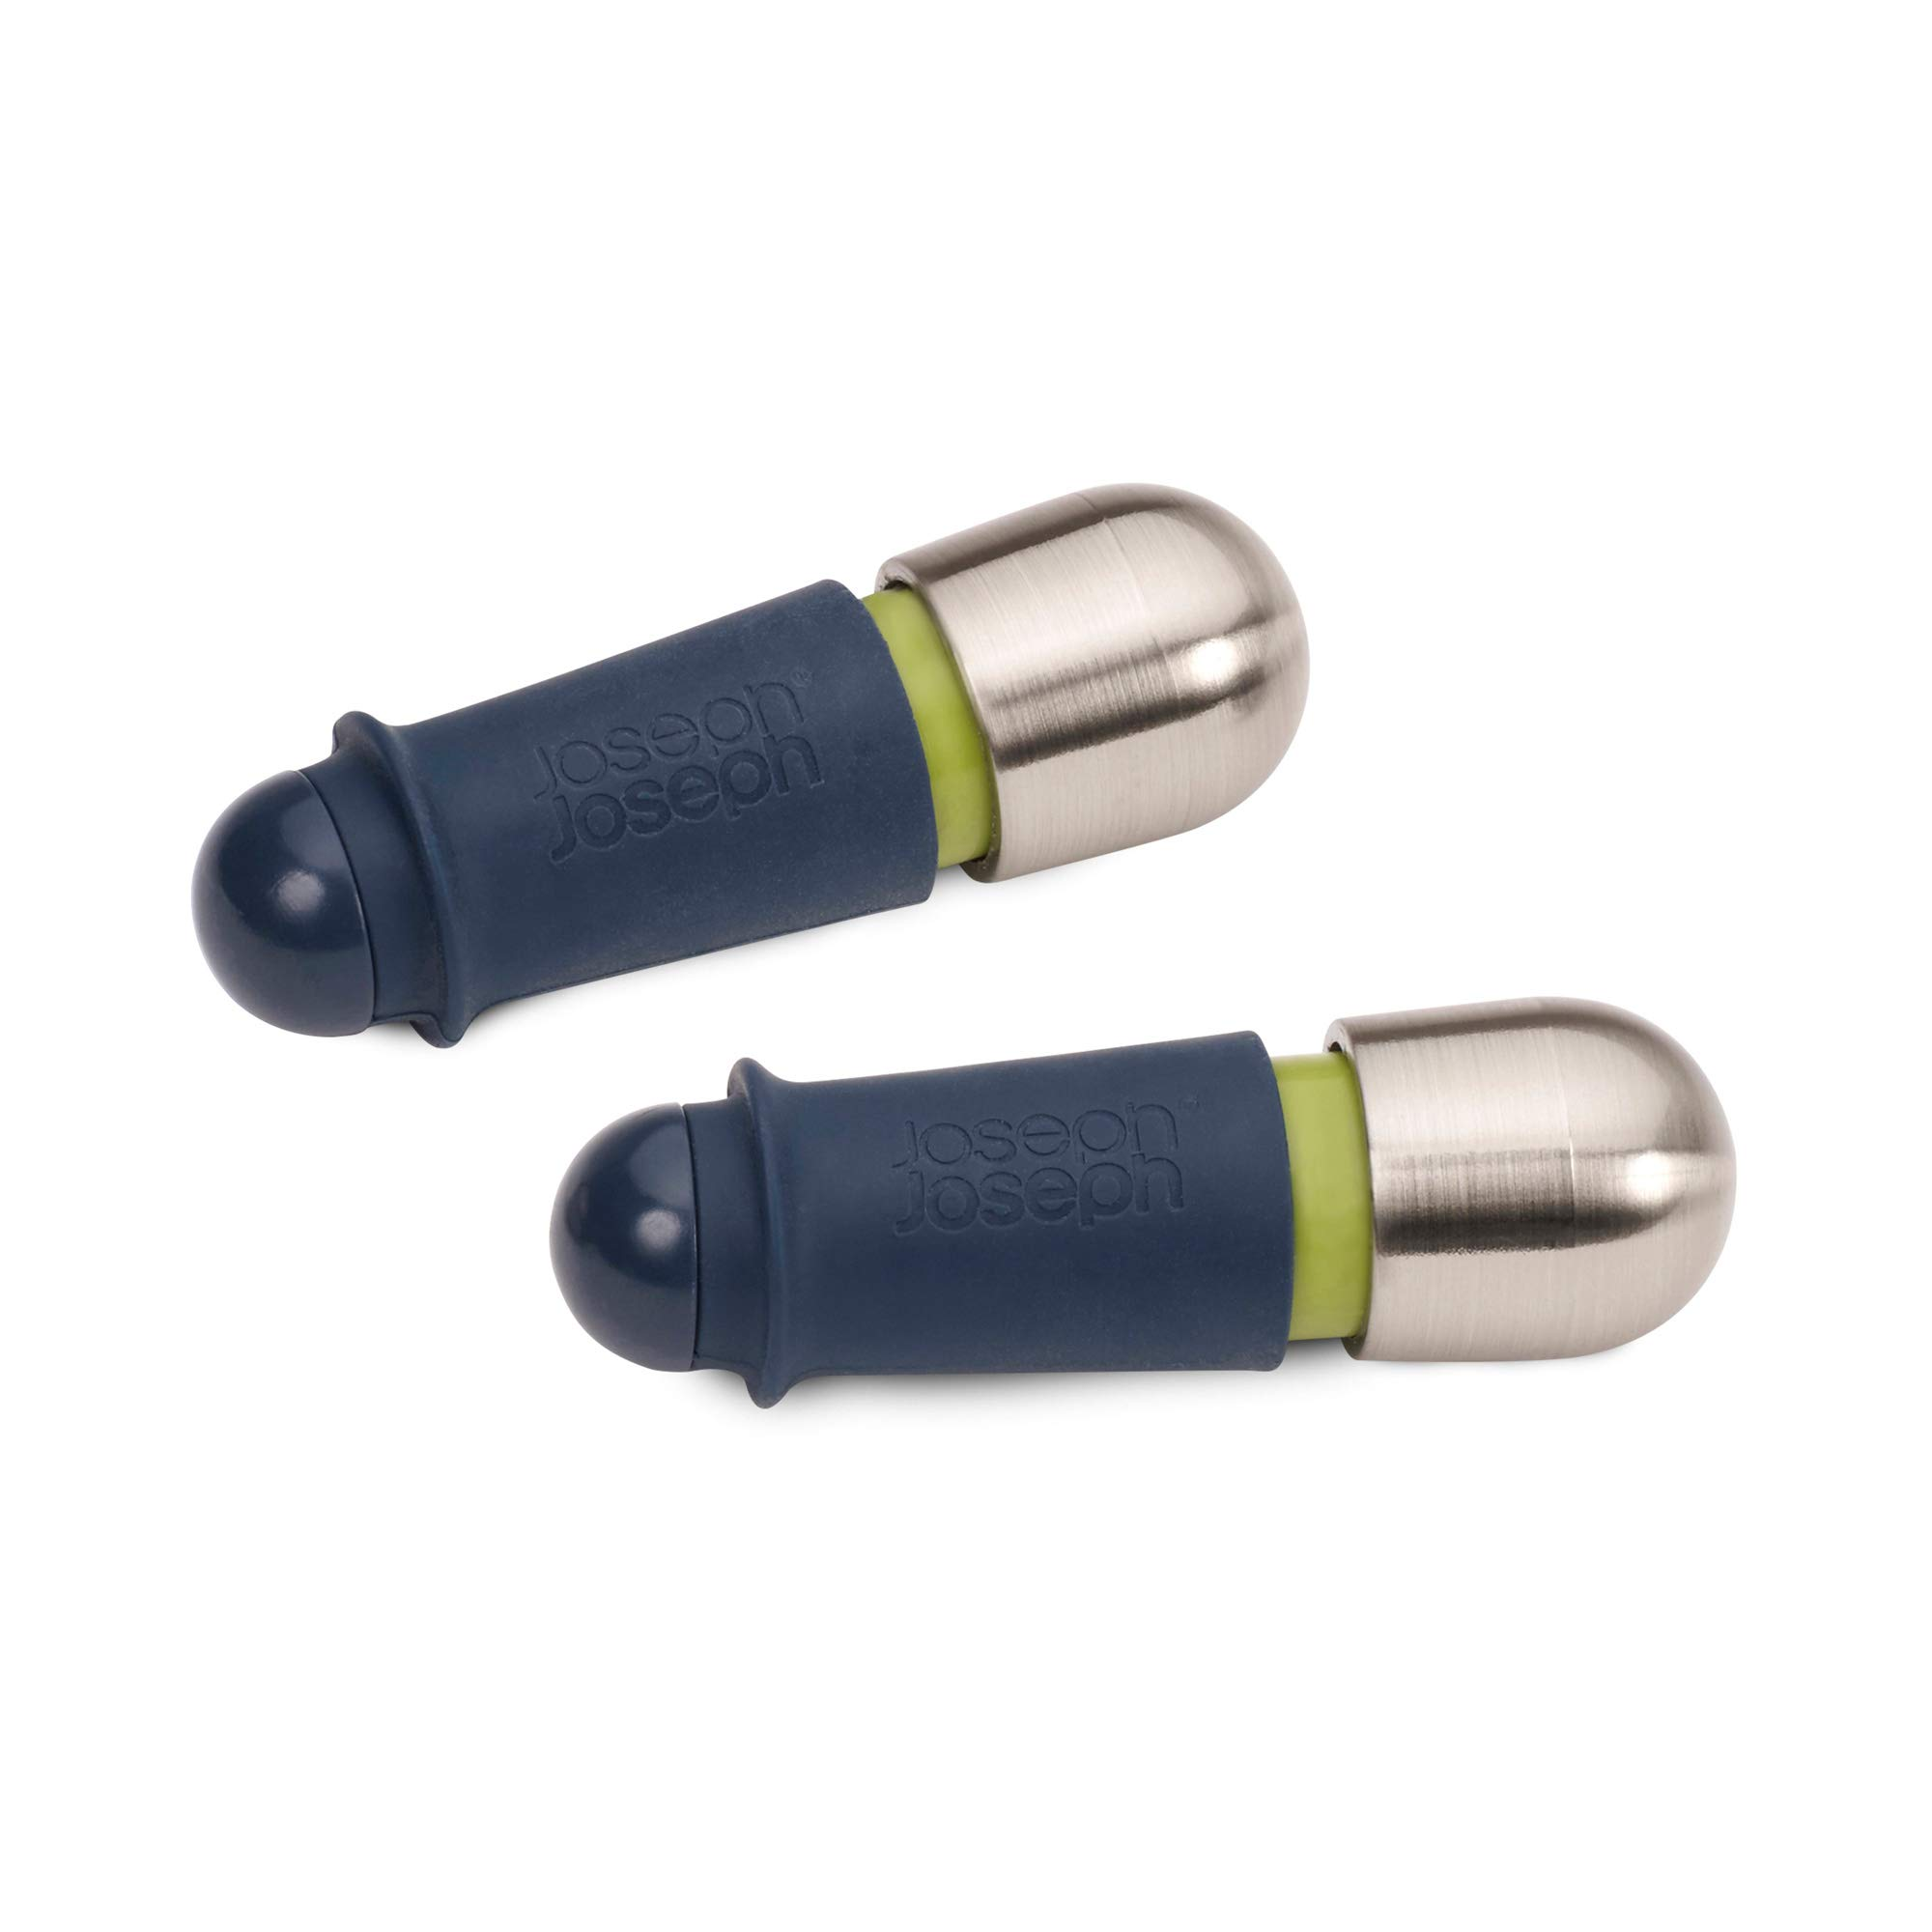 Joseph Joseph BarWise Twist-Lock Wine Stoppers, 2-Piece, Blue